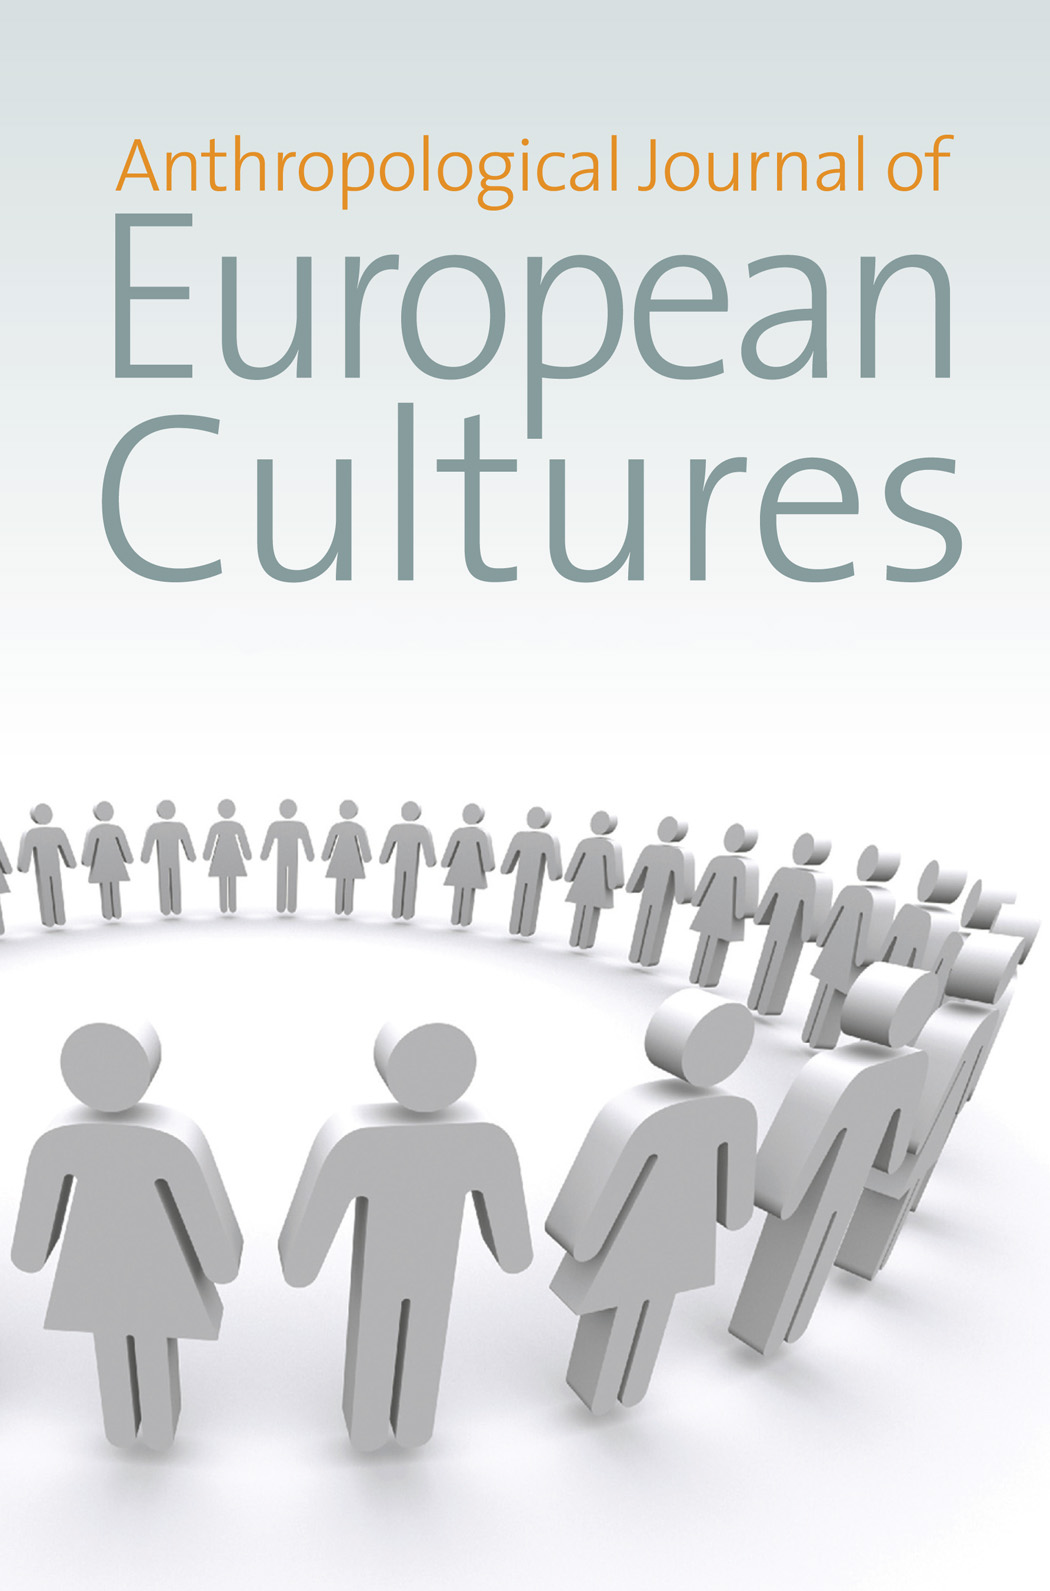 Anthropology of European Cultures